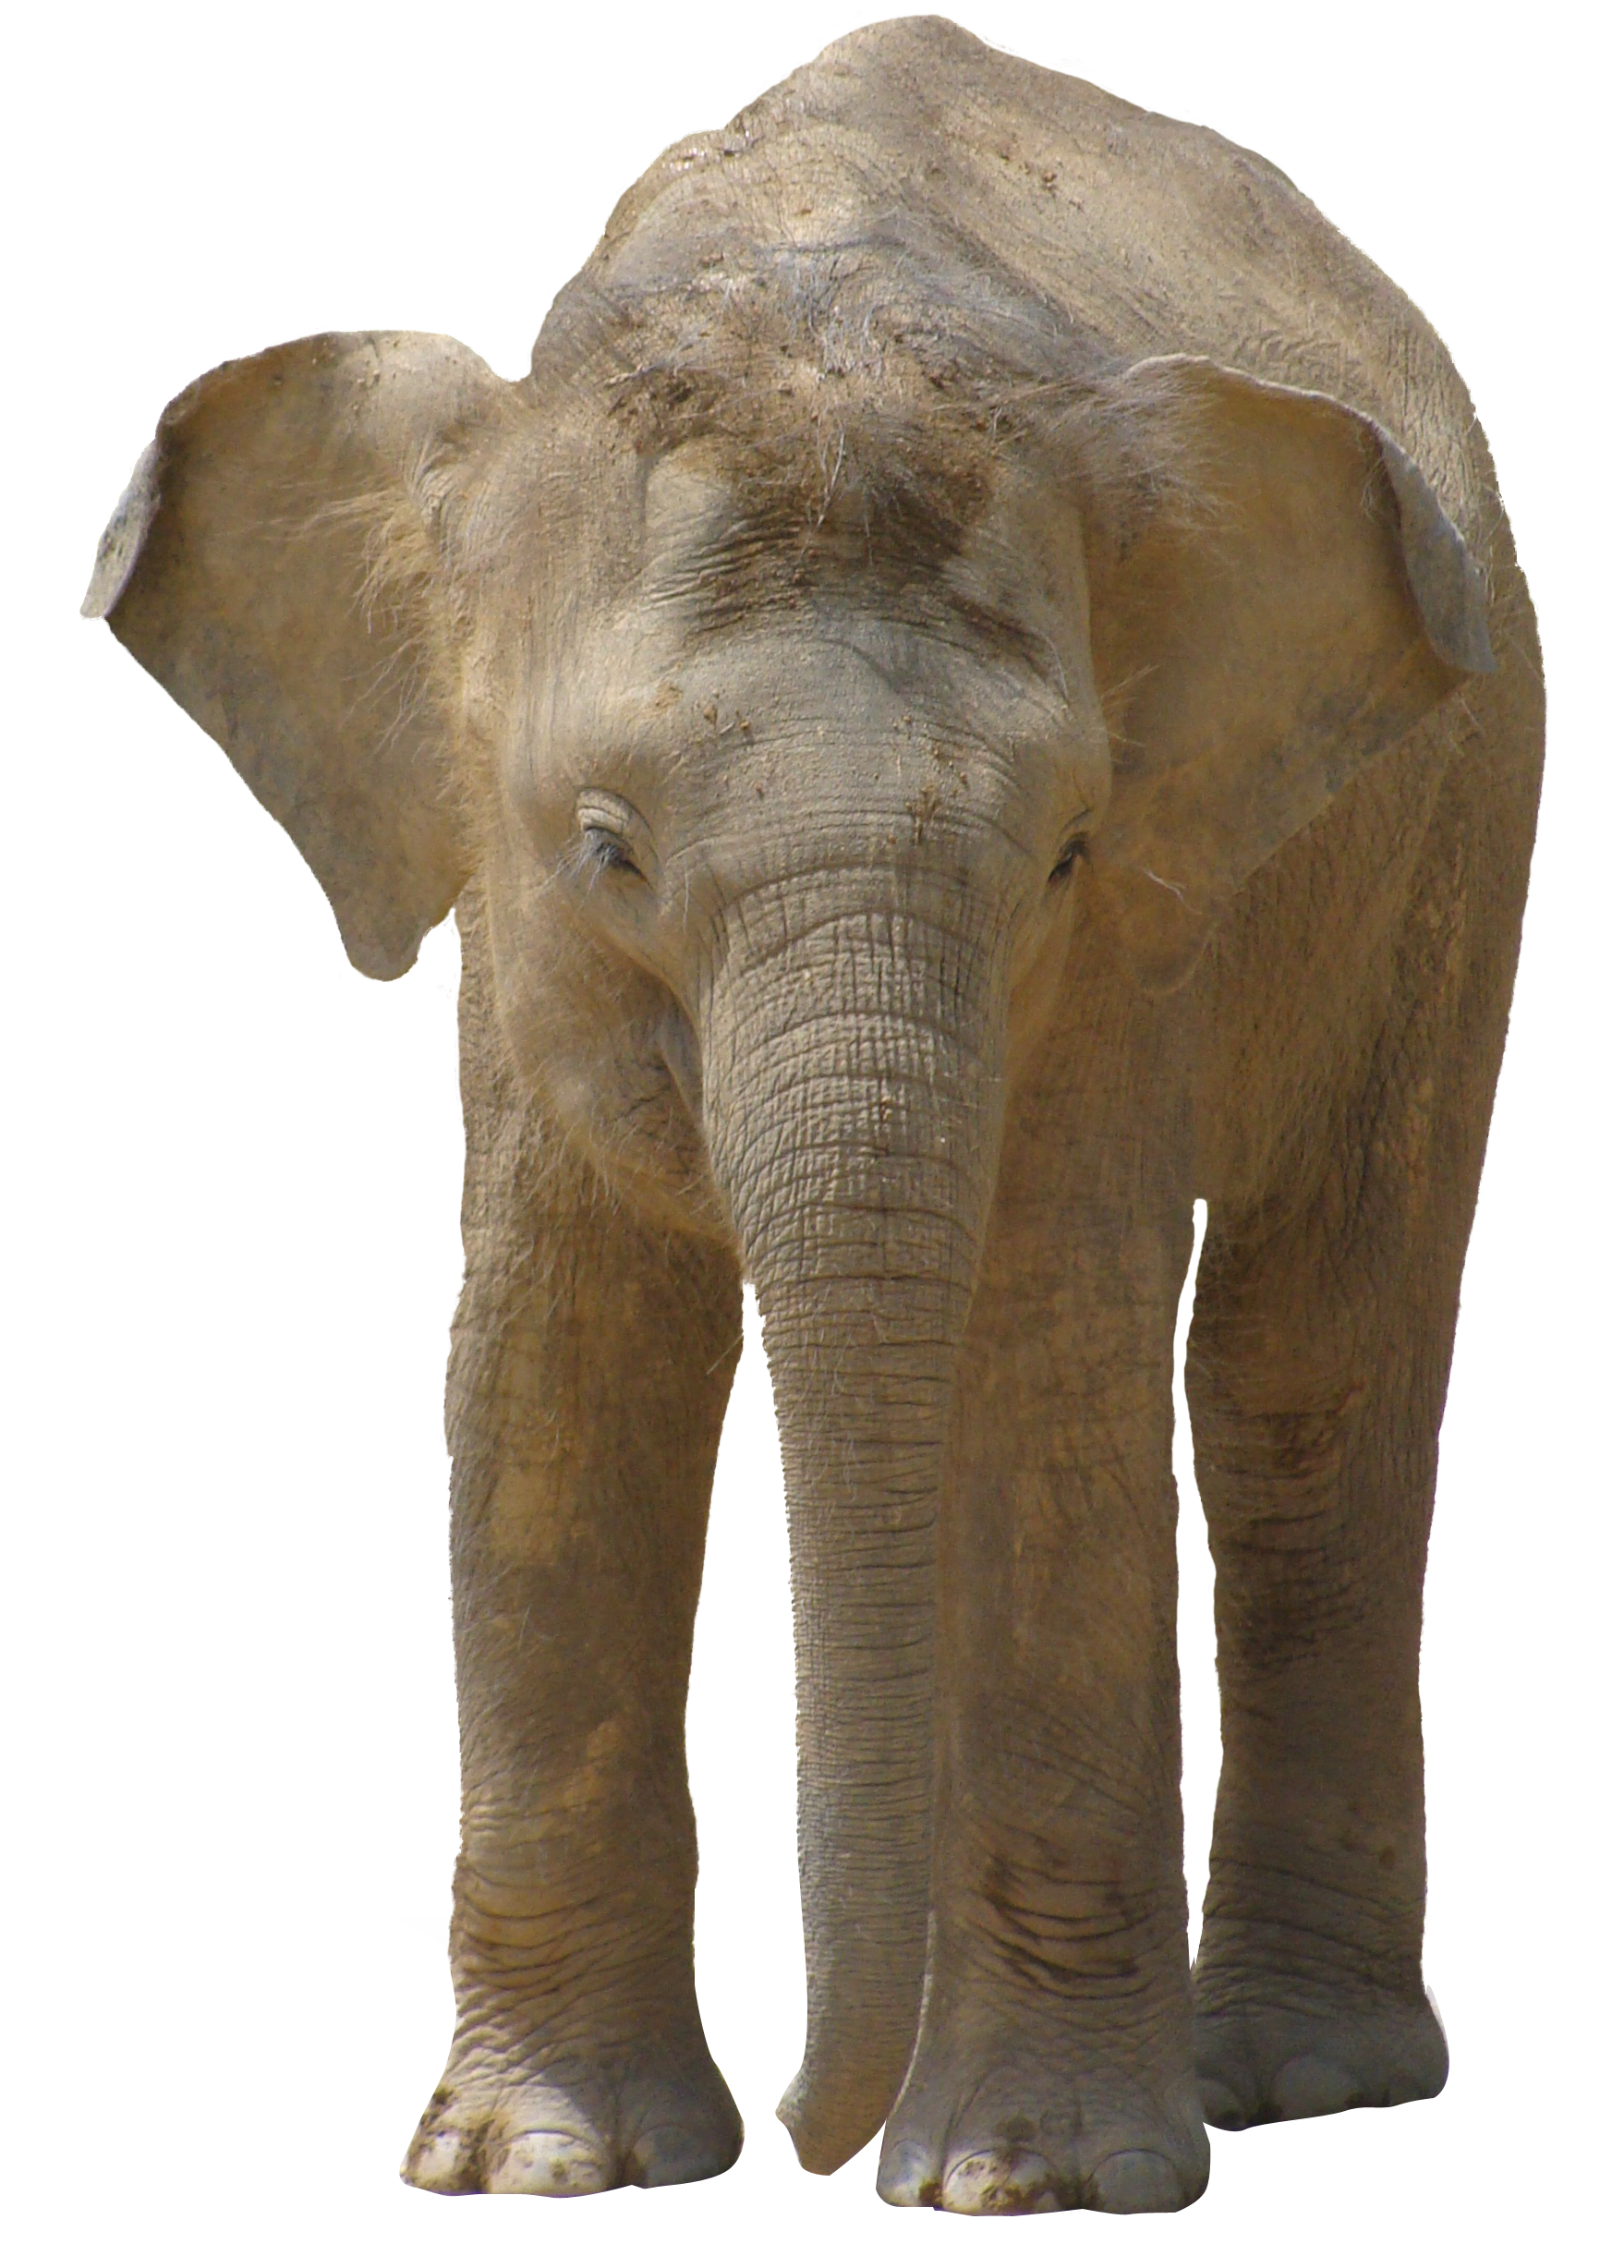 Elephant Png Image Pngpix Over 411 elephant png images are found on vippng. pngpix